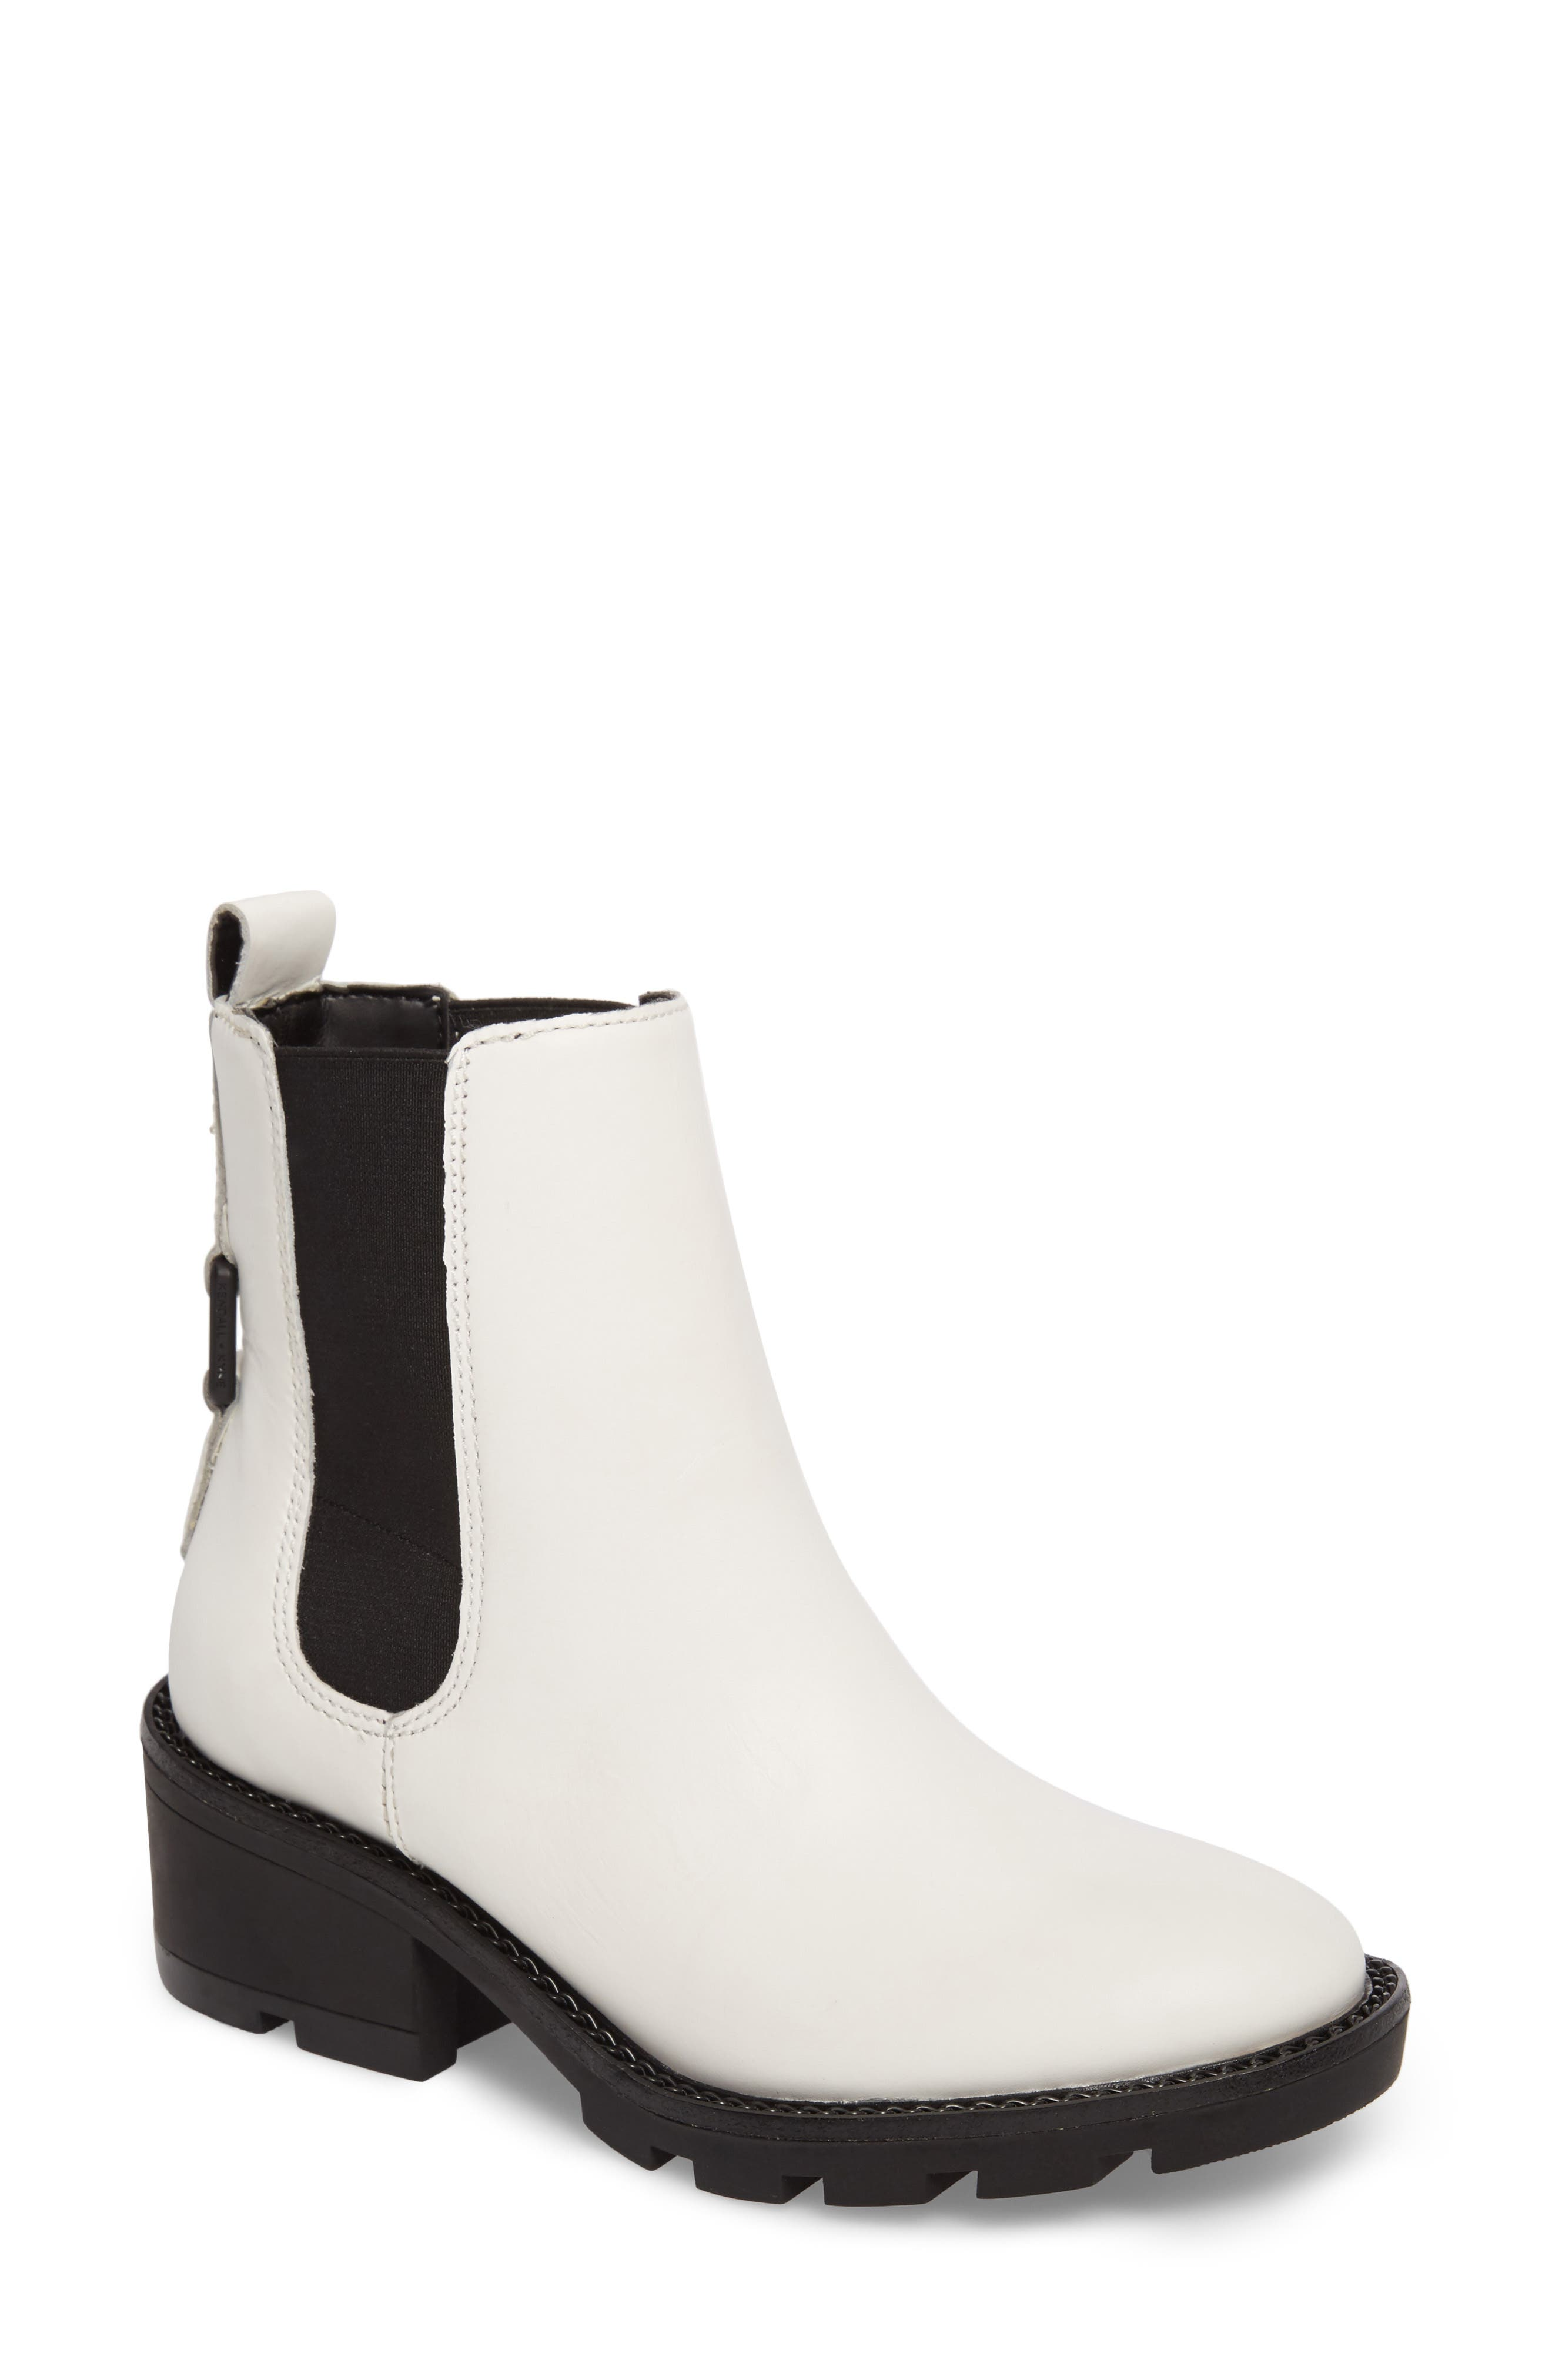 KENDALL + KYLIE Porter Lug Chelsea Bootie (Women)